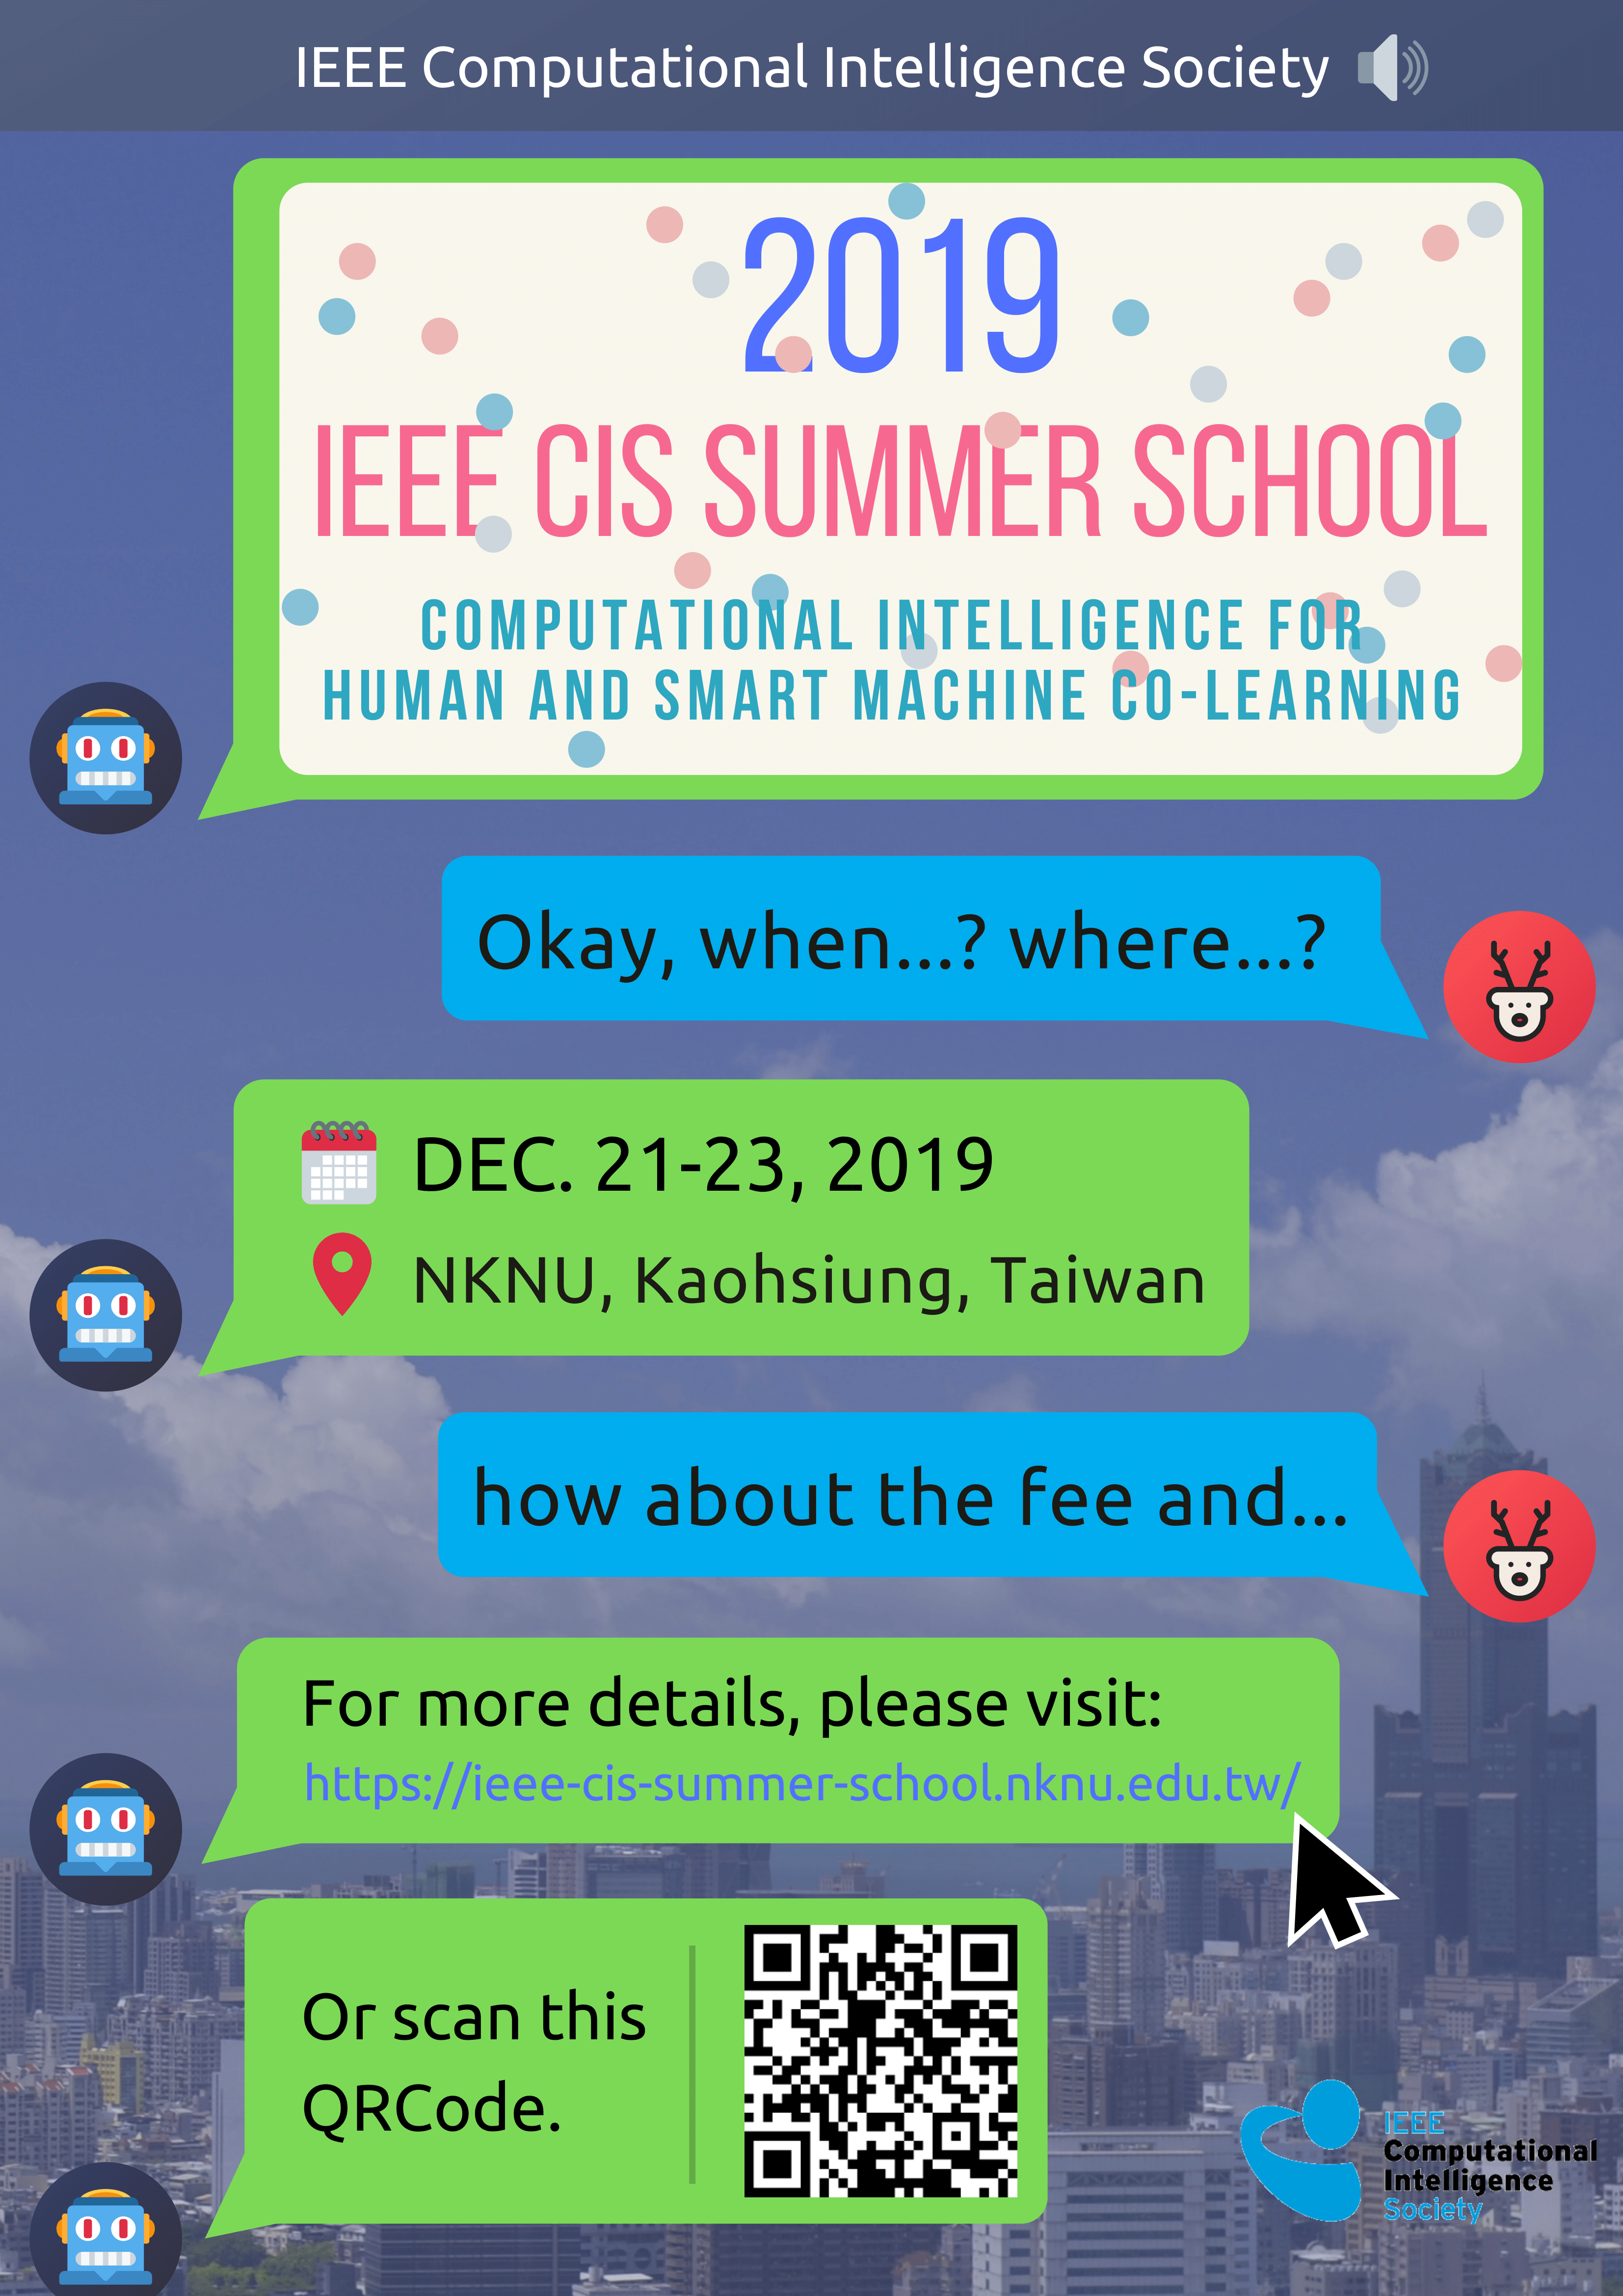 2019 IEEE CIS SUMMER SCHOOL